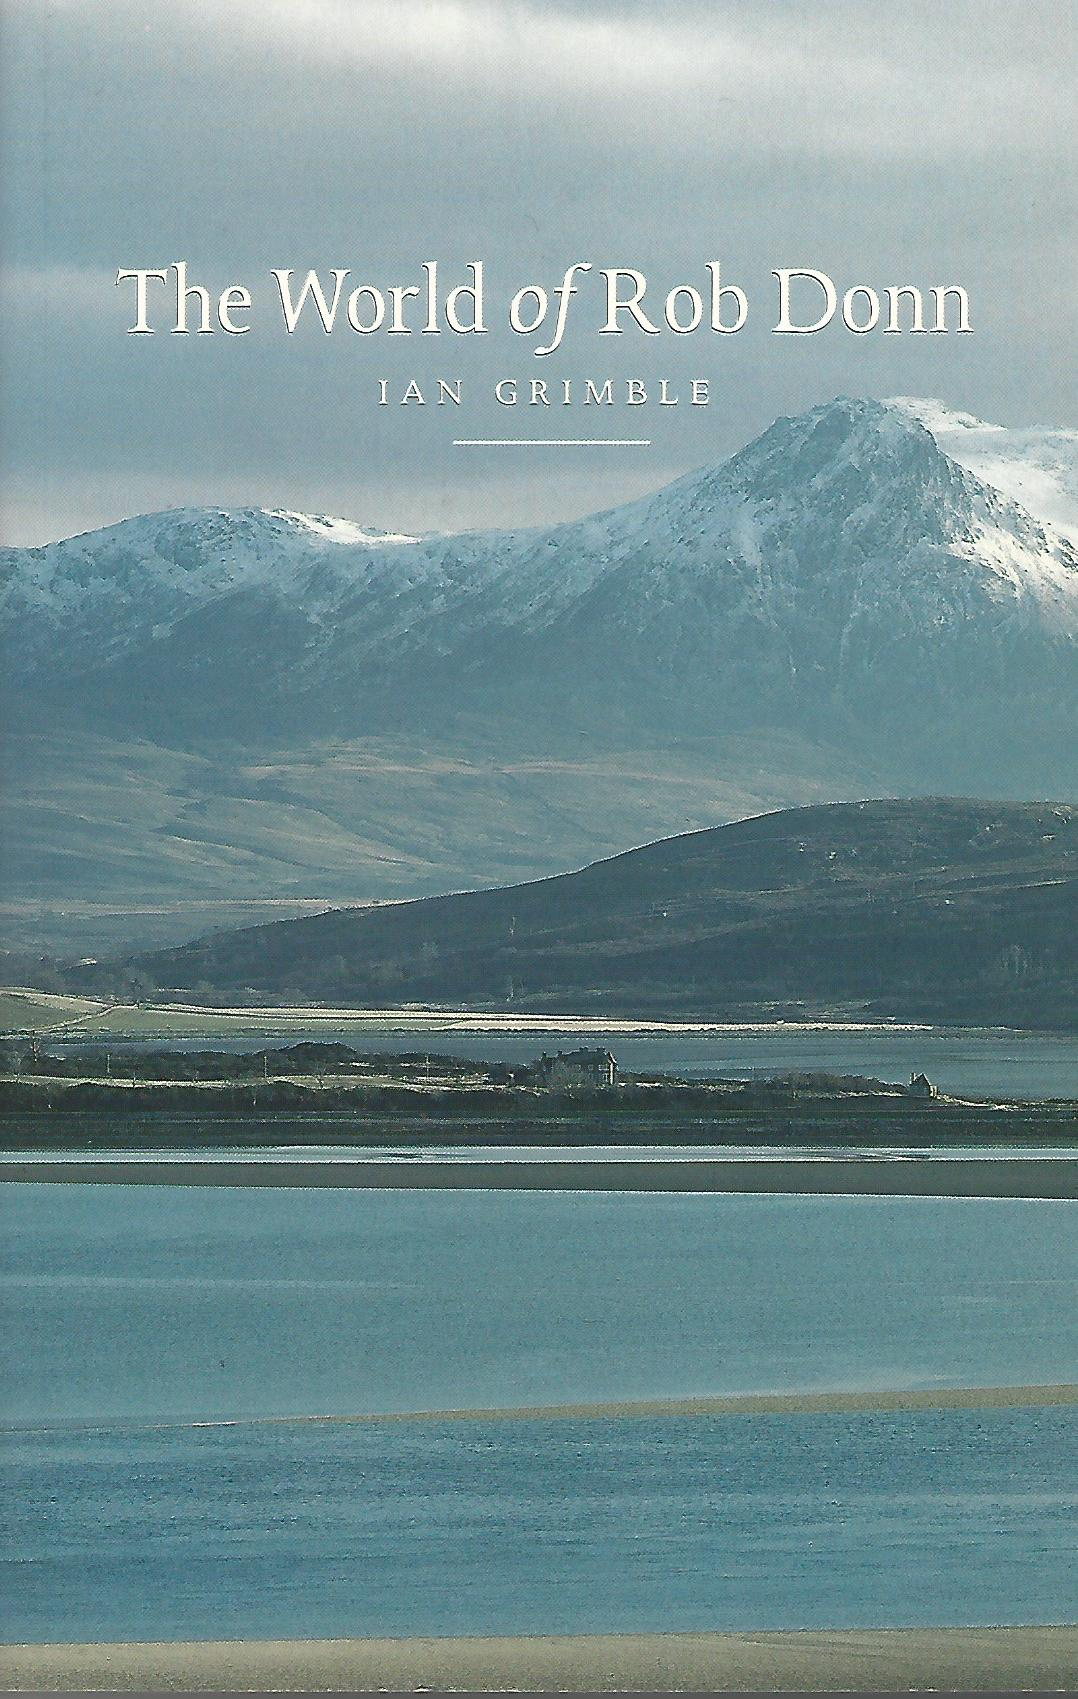 Image for The World of Rob Donn.